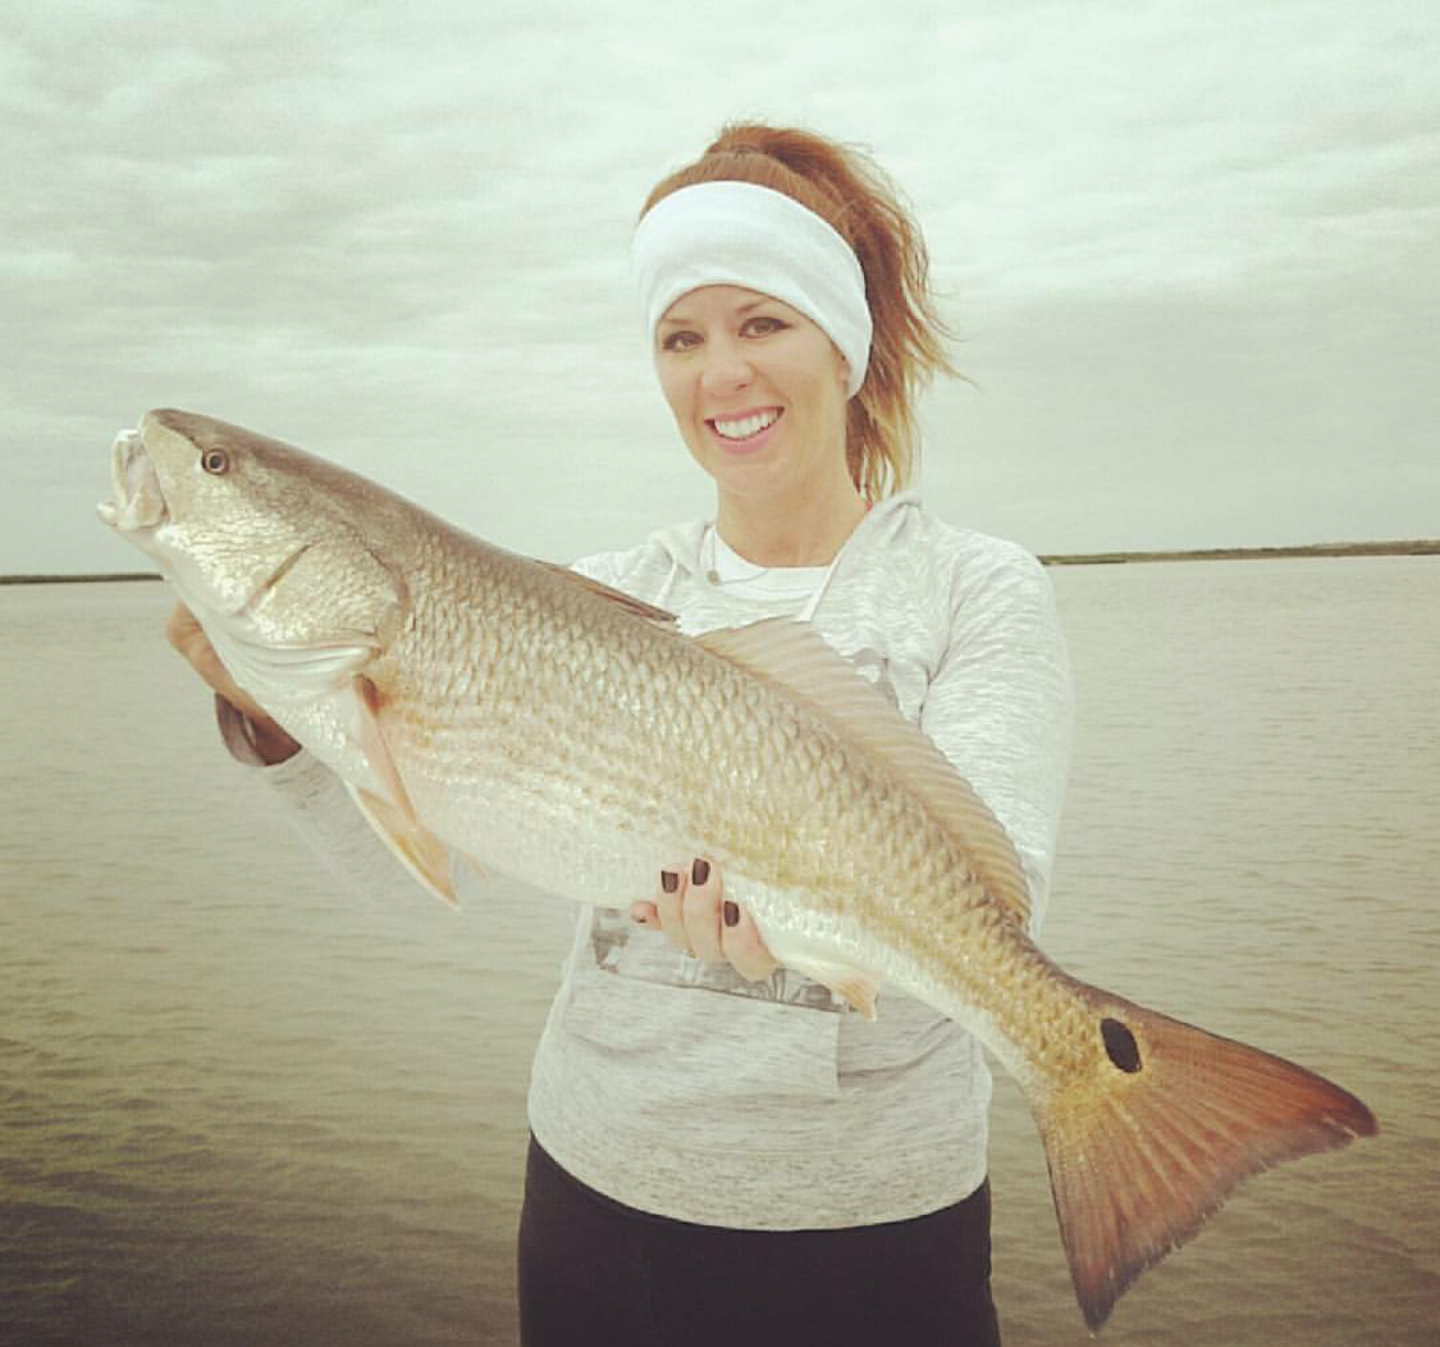 Redhead catching big reds in SPI